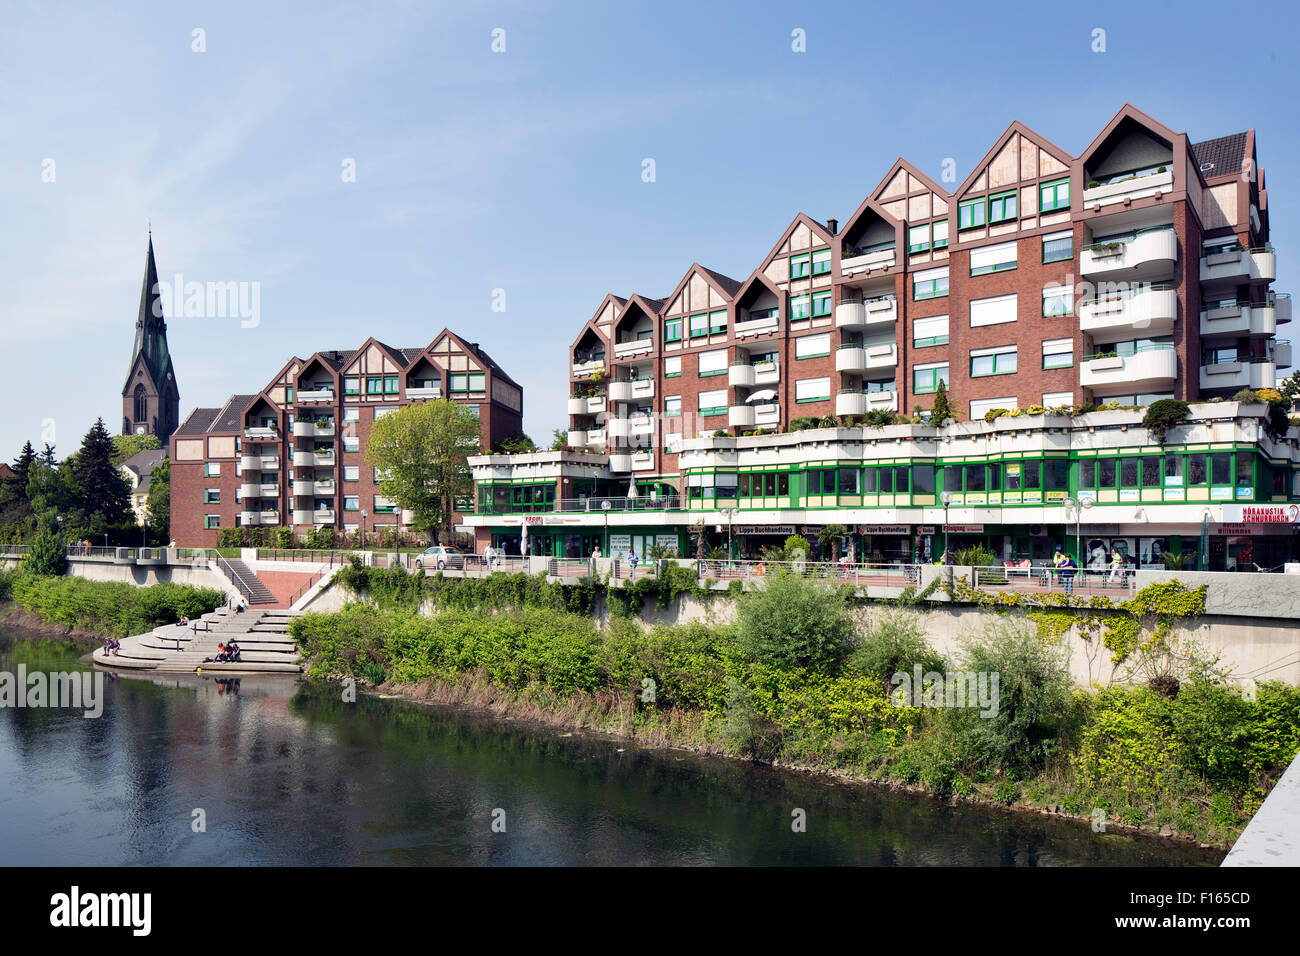 Residential and commercial buildings along the river Lippe, Lünen, Ruhr district, North Rhine-Westphalia, Germany - Stock Image